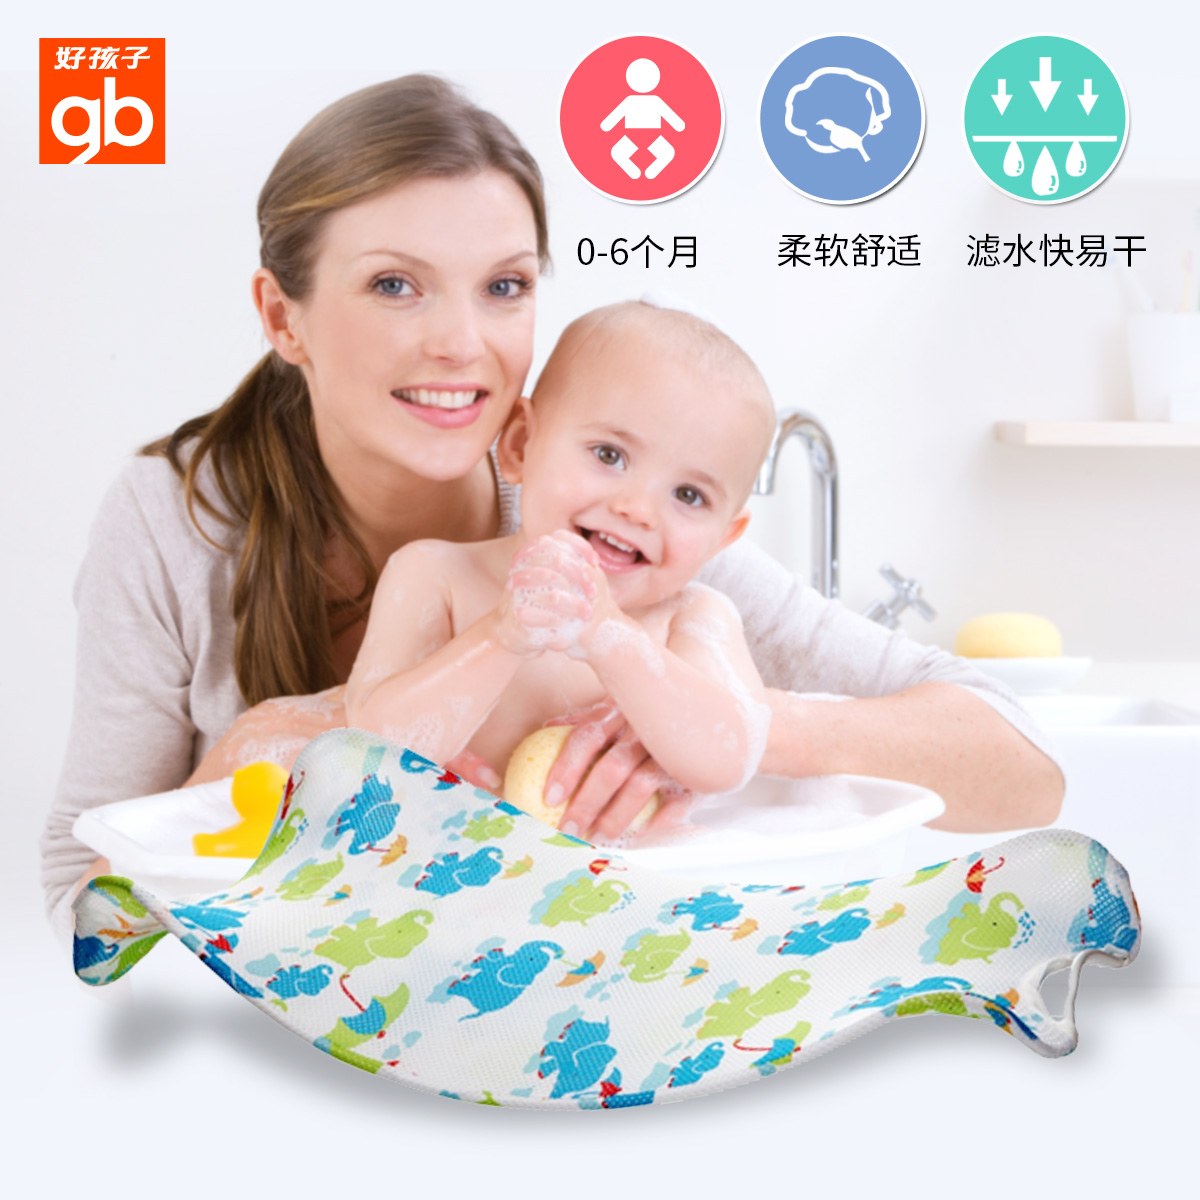 USD 29.56] Good boy baby shower frame universal can sit lie baby ...